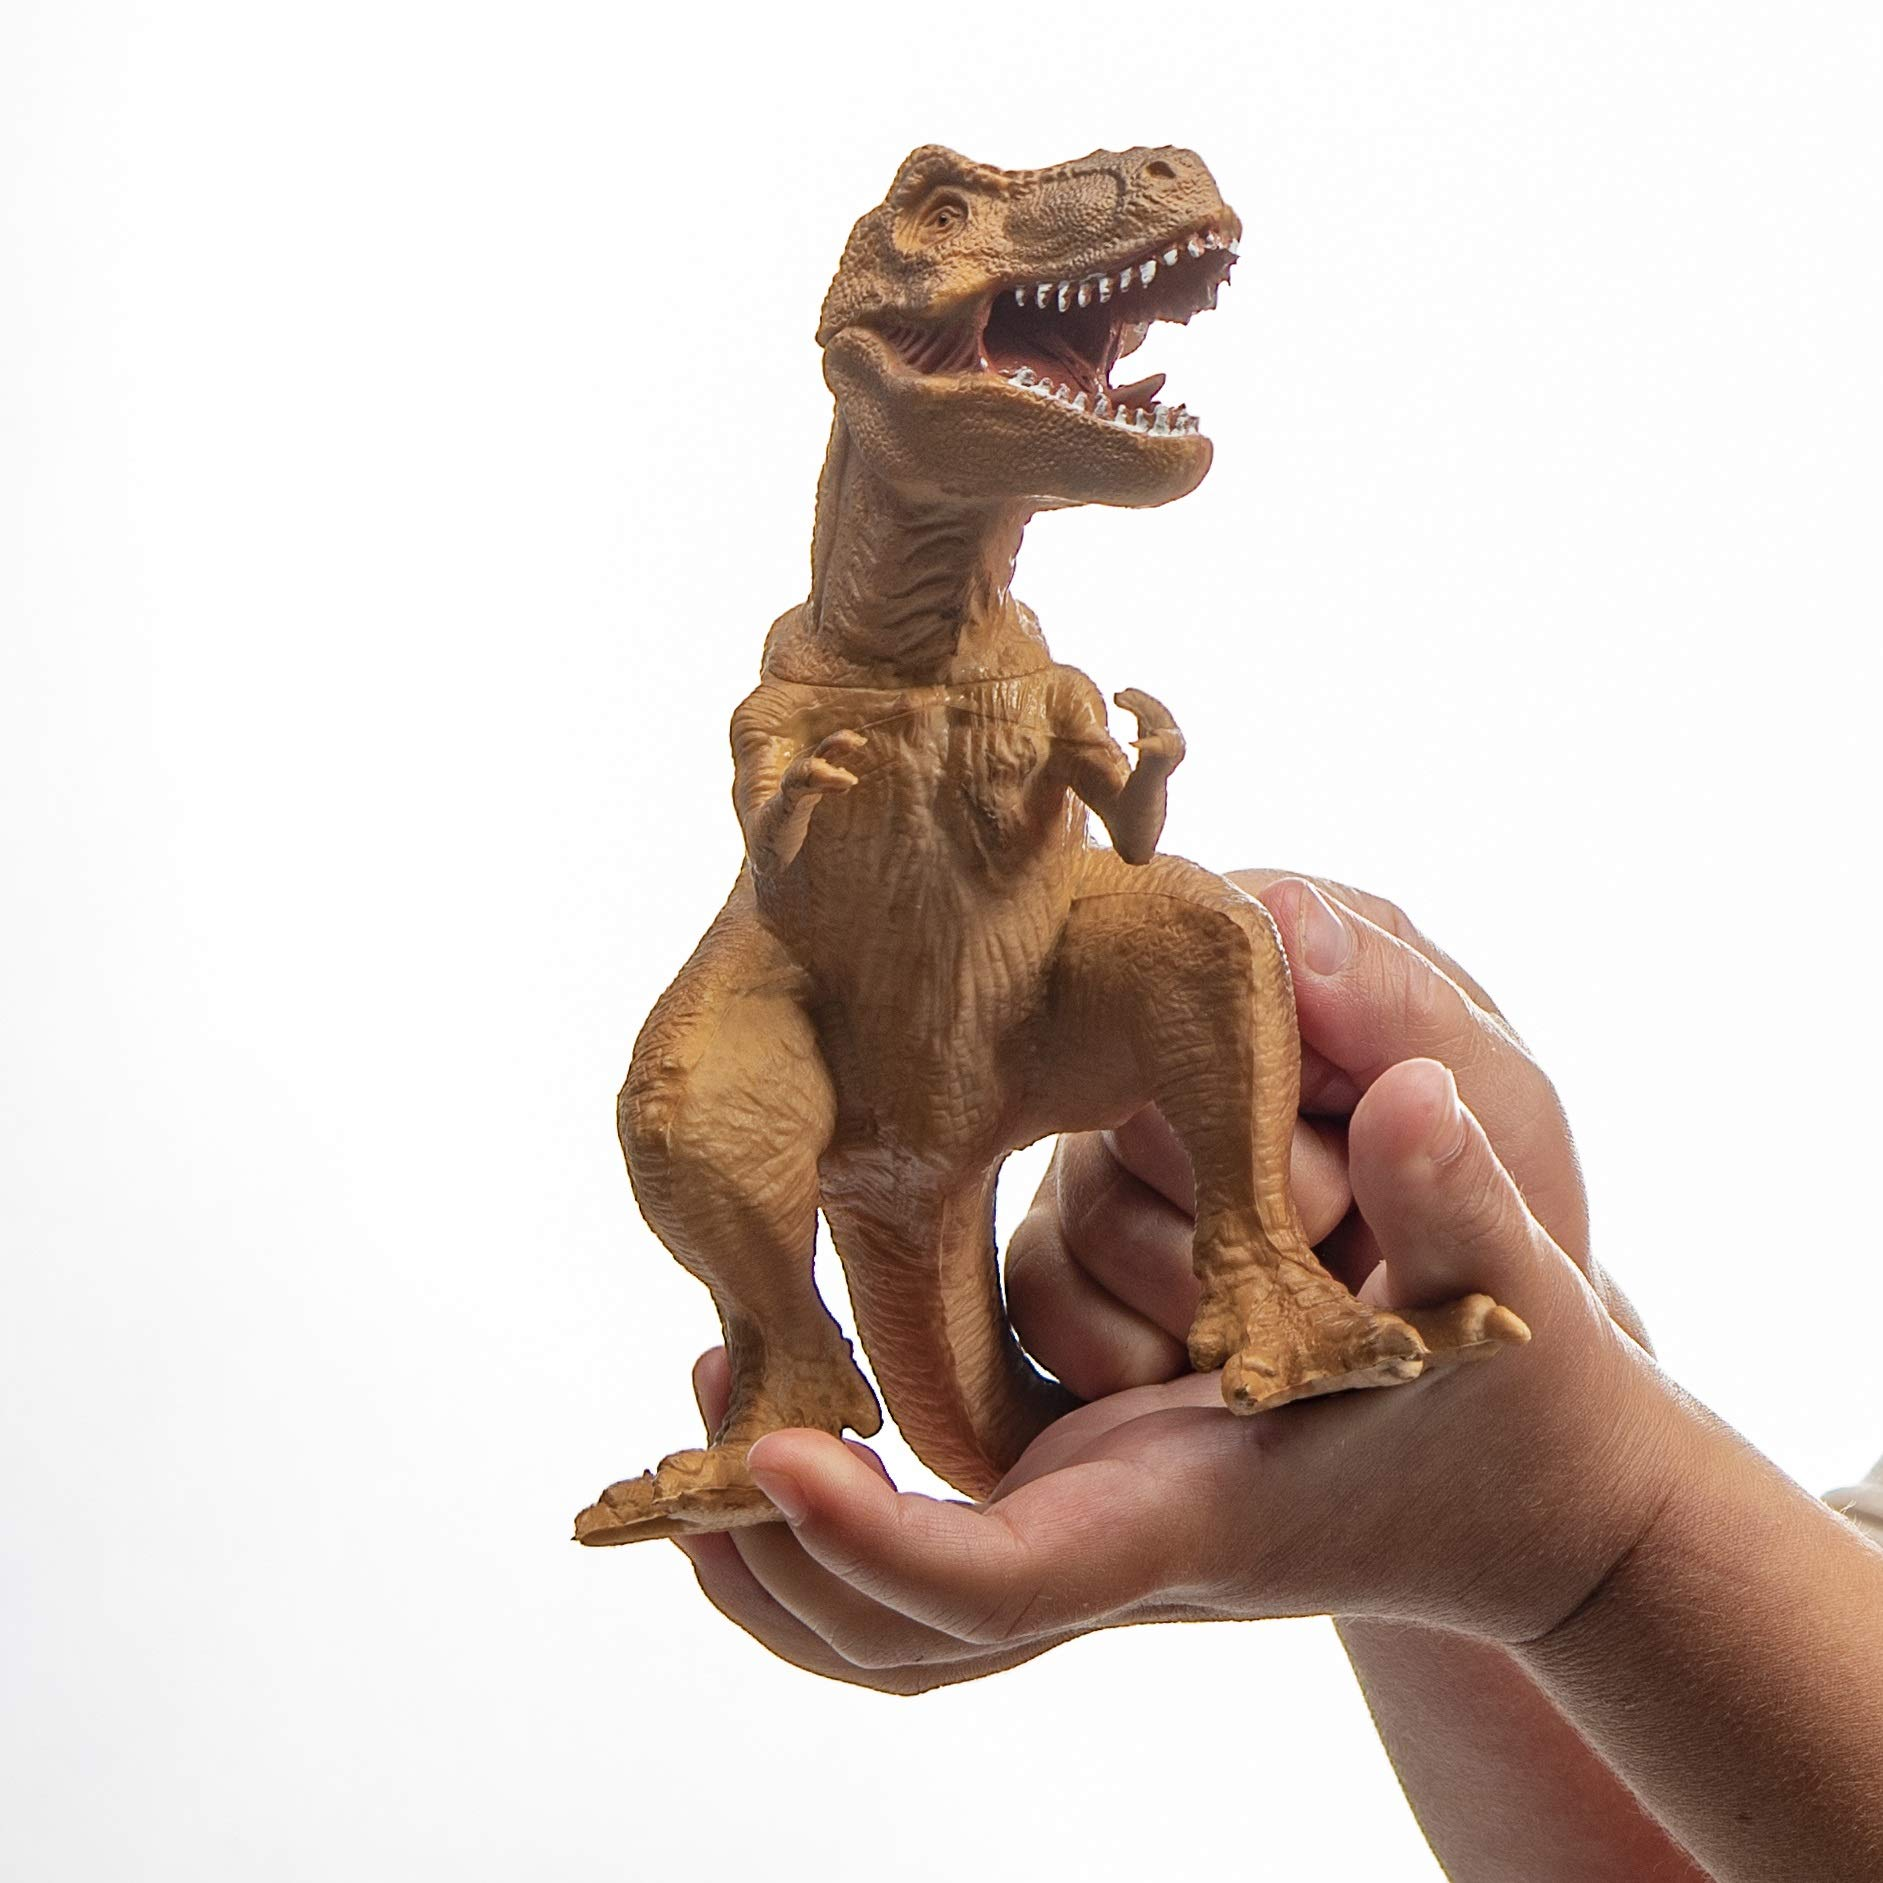 Prextex Realistic Looking 10'' Dinosaurs Pack of 12 Large Plastic Assorted Dinosaur Figures by Prextex (Image #2)